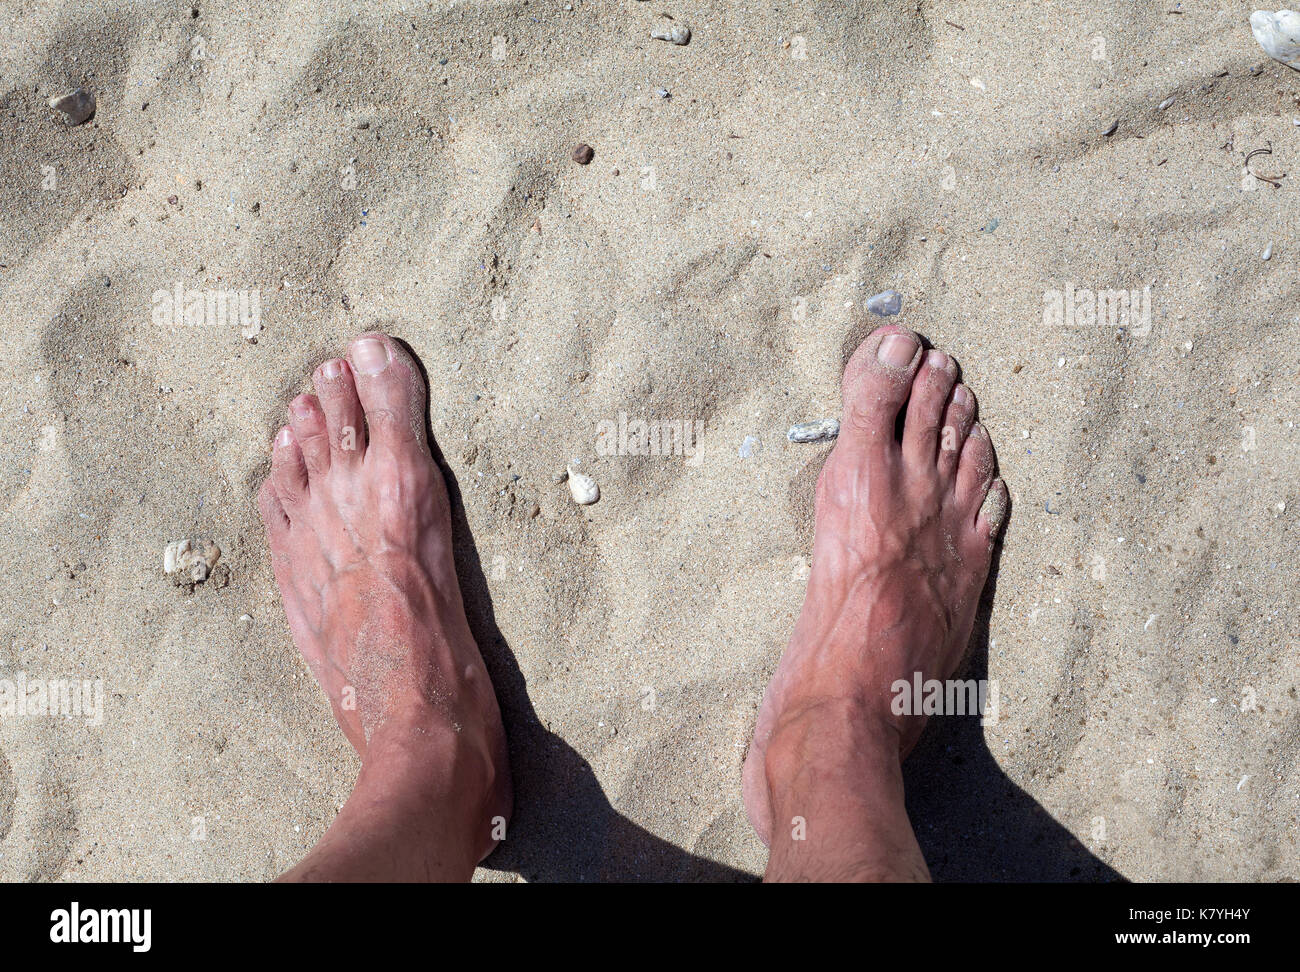 Details of man's legs, standing on sand. - Stock Image